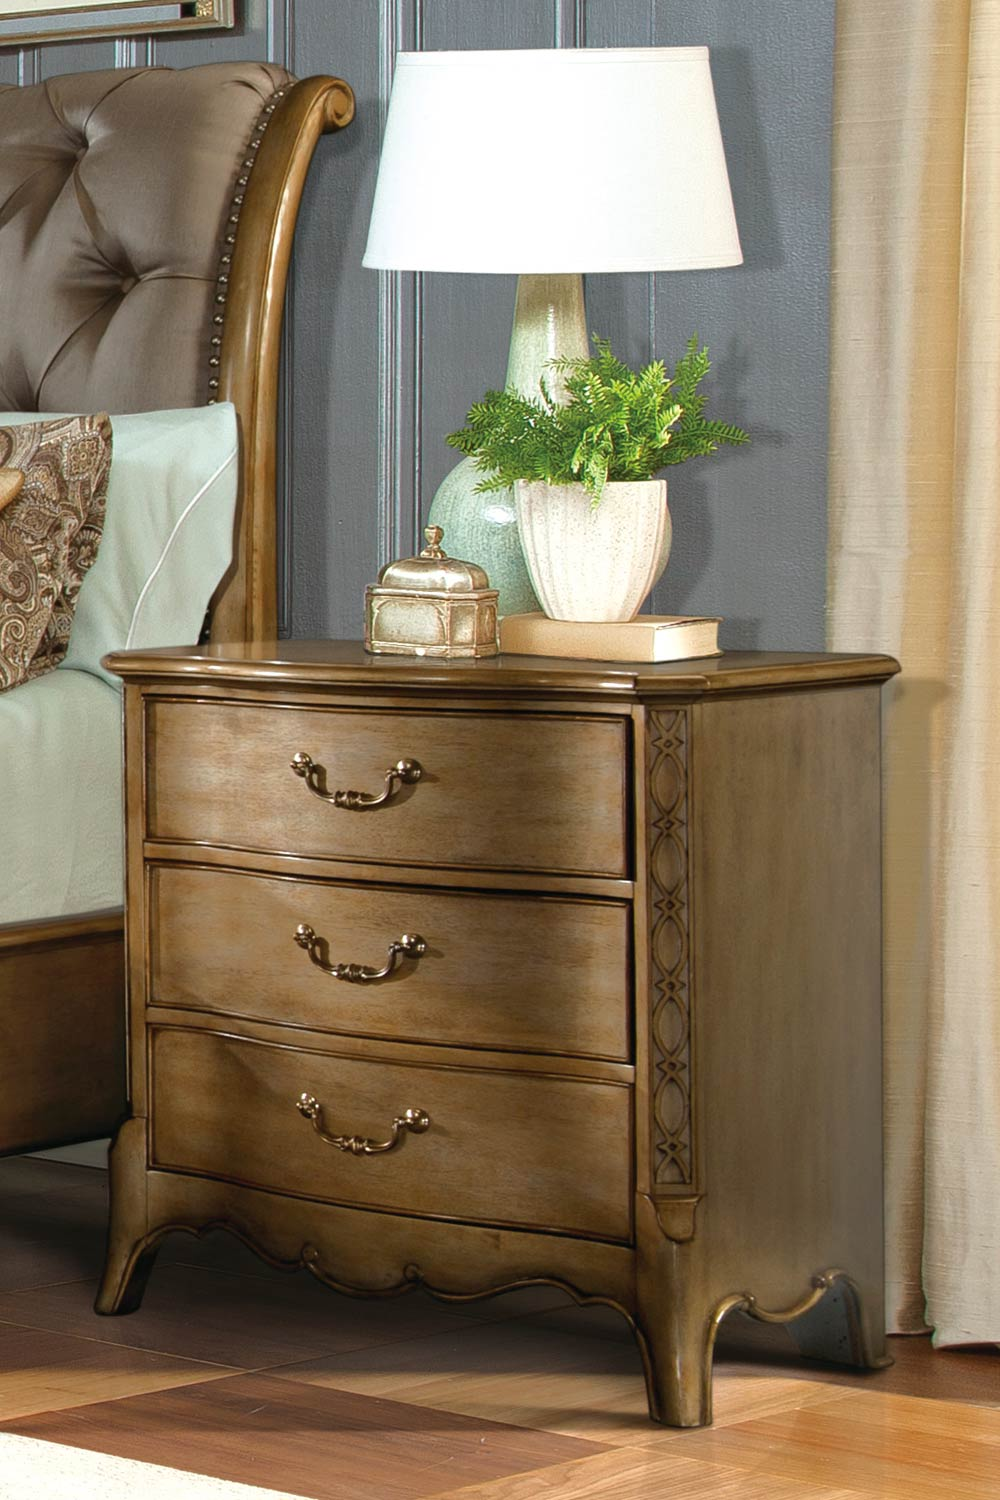 Homelegance Chambord Night Stand - Champagne Gold